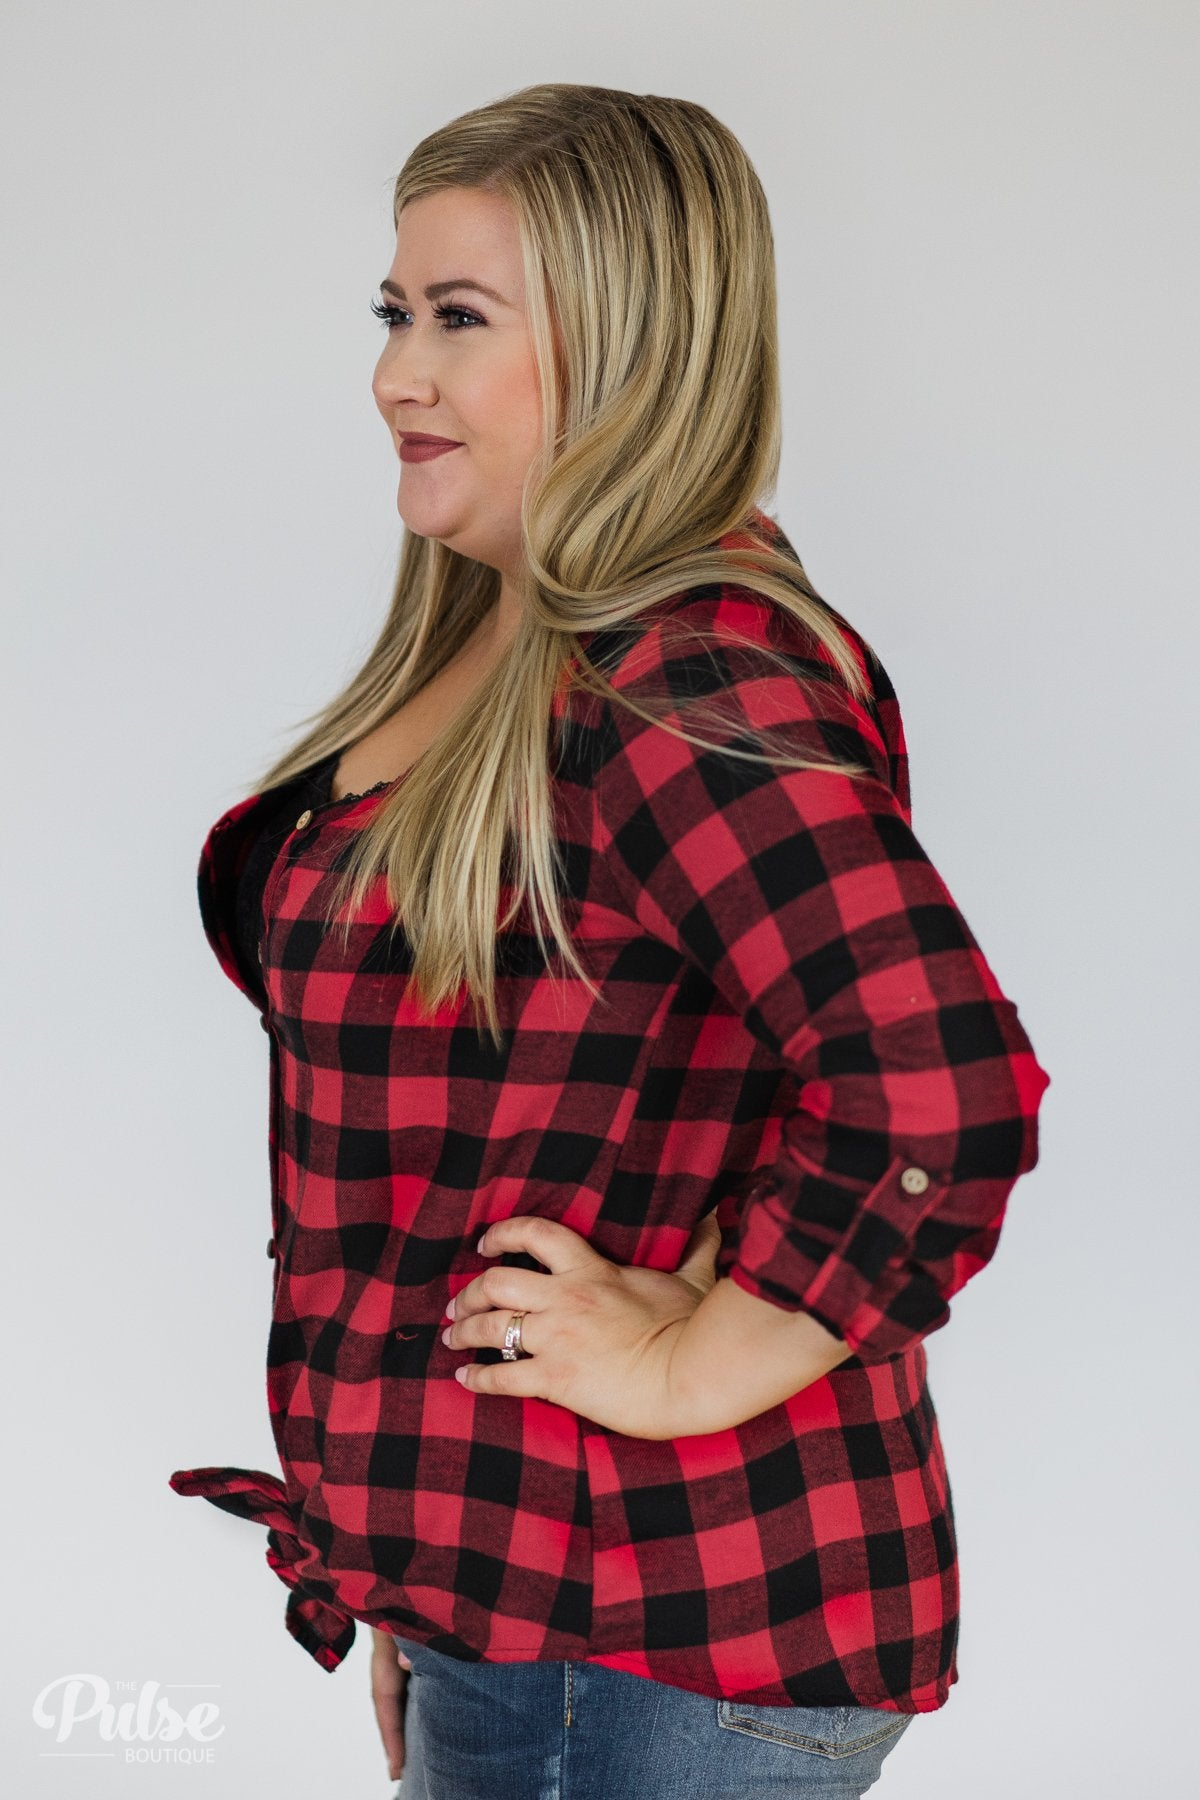 Keep It Coming Buffalo Plaid Button Up Top